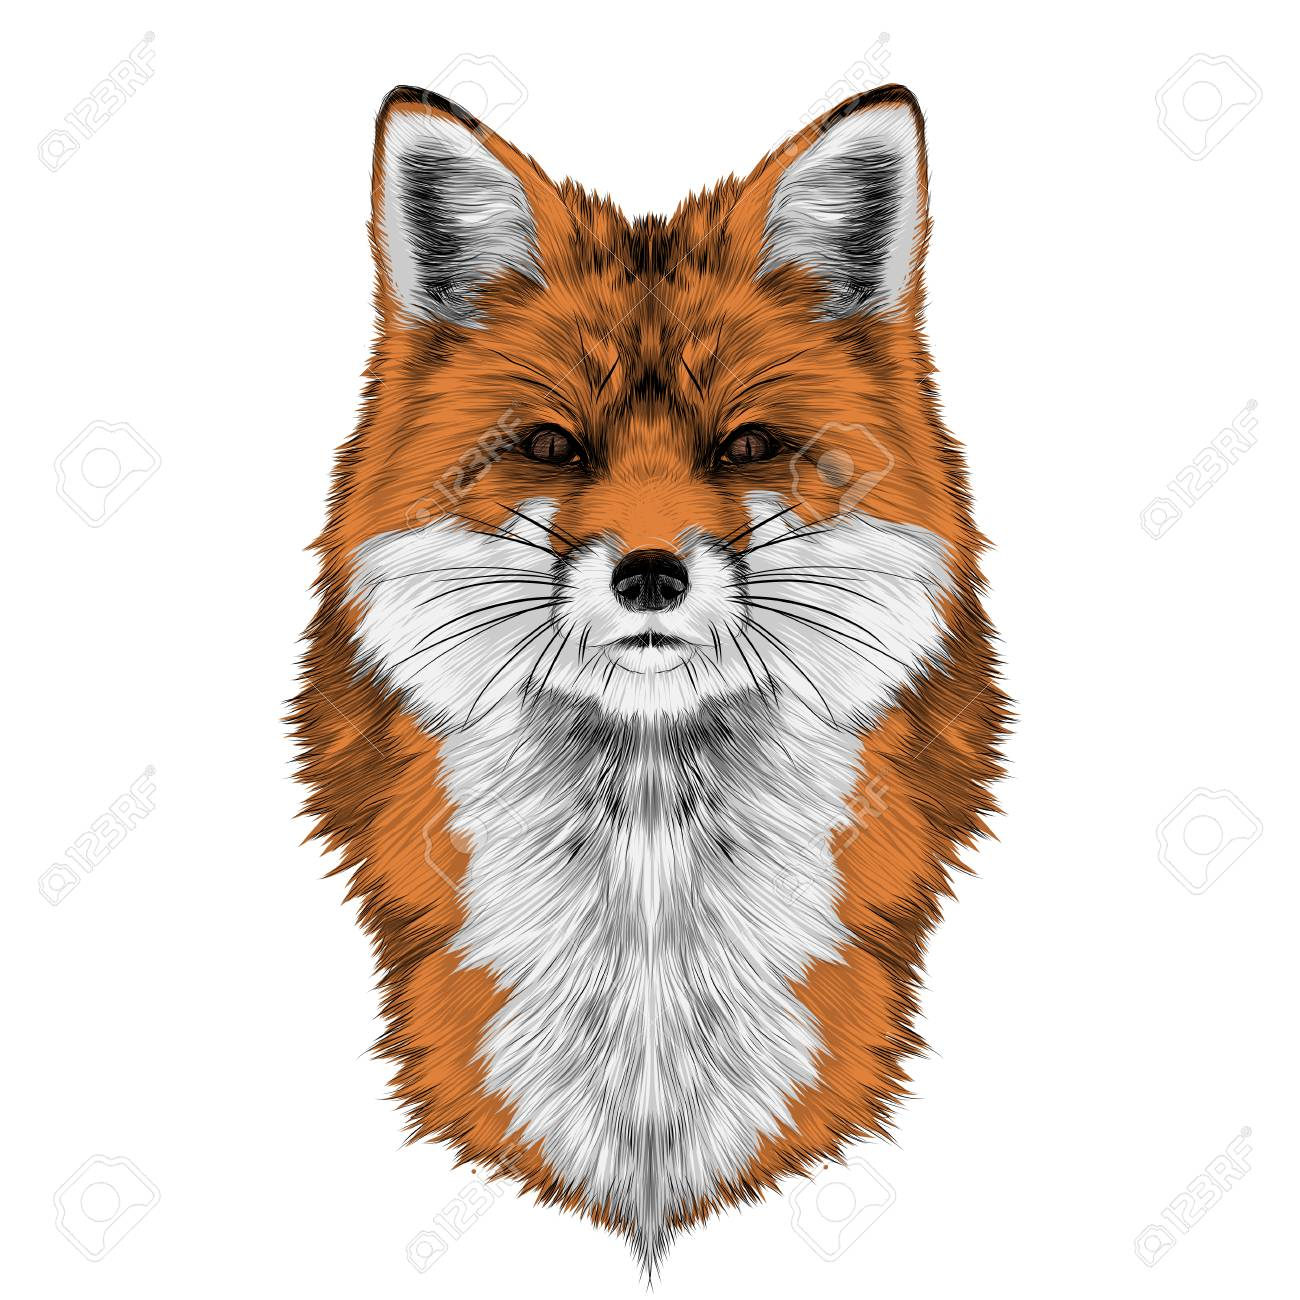 Fox Head Front Looking Directly Sketch Vector Graphics Color Royalty Free Cliparts Vectors And Stock Illustration Image 81011287